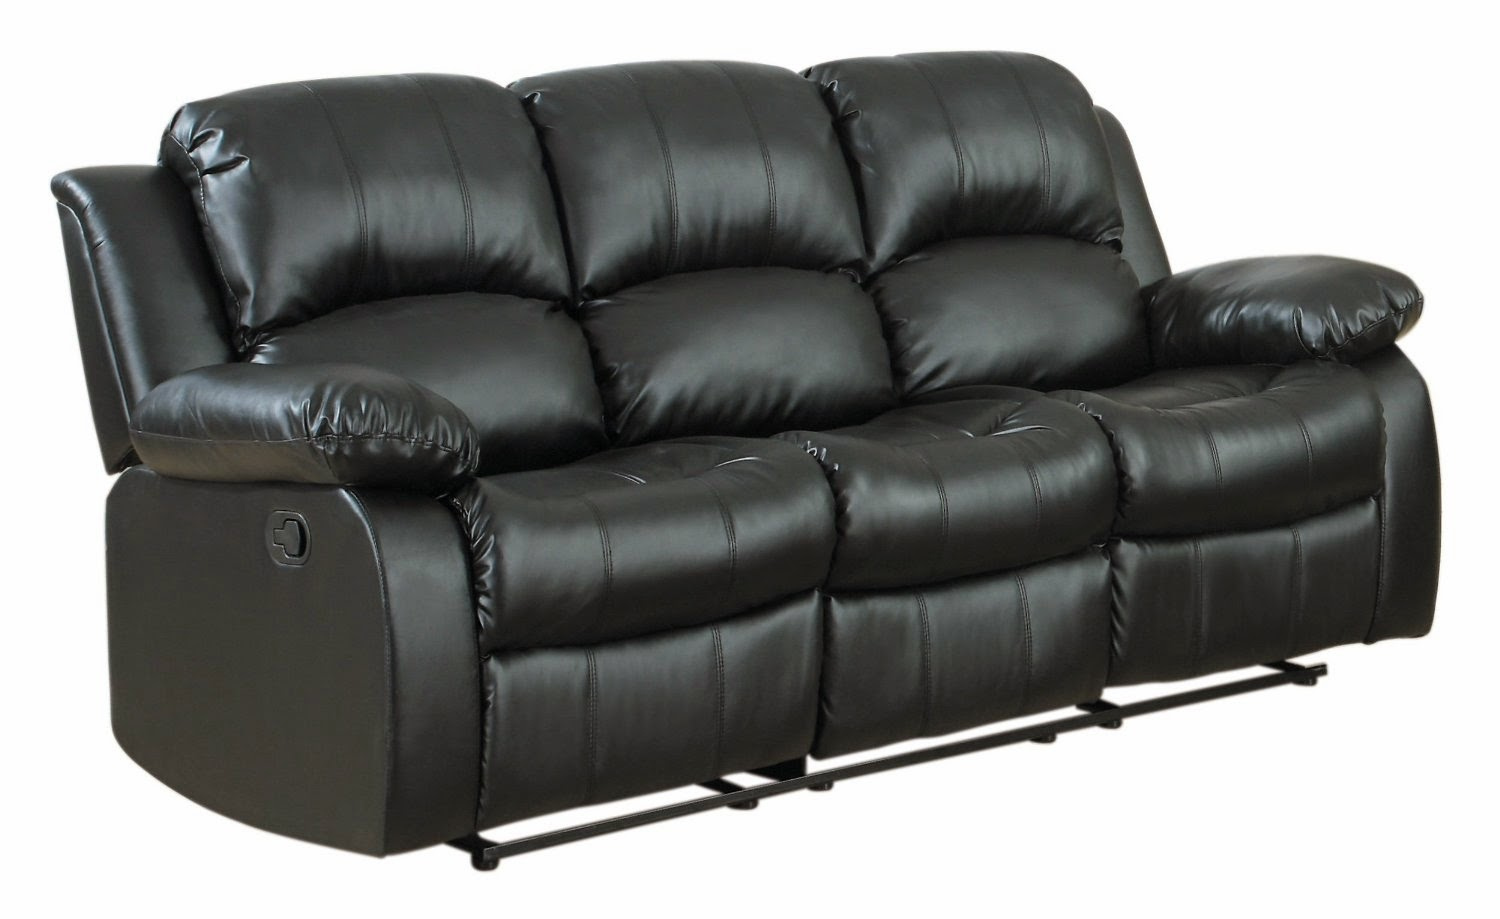 Best Recliner Sofa Brand Recommendation Wanted Cheap